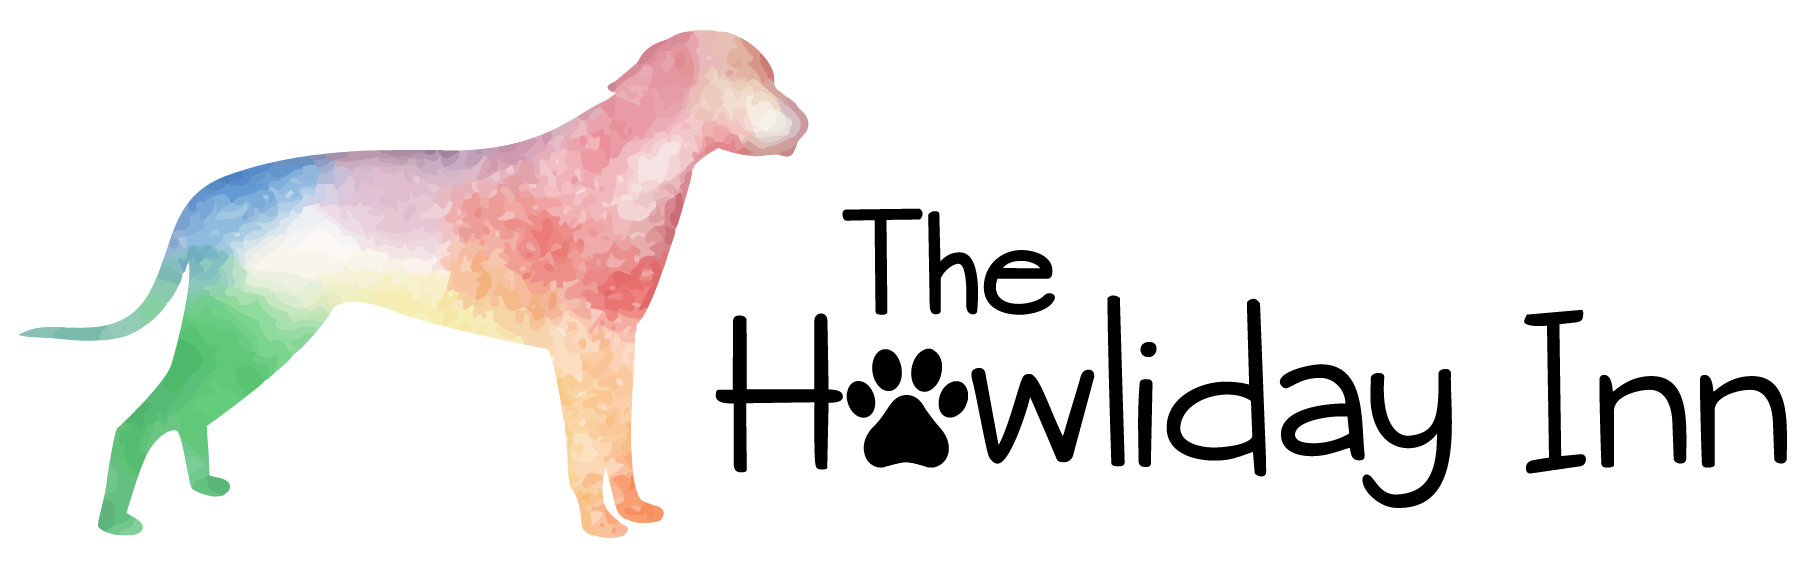 The Howliday Inn Dog Day Care, Pet Boarding, Dog Walking, Grooming, Training, Thanet, Sandwich, Dover